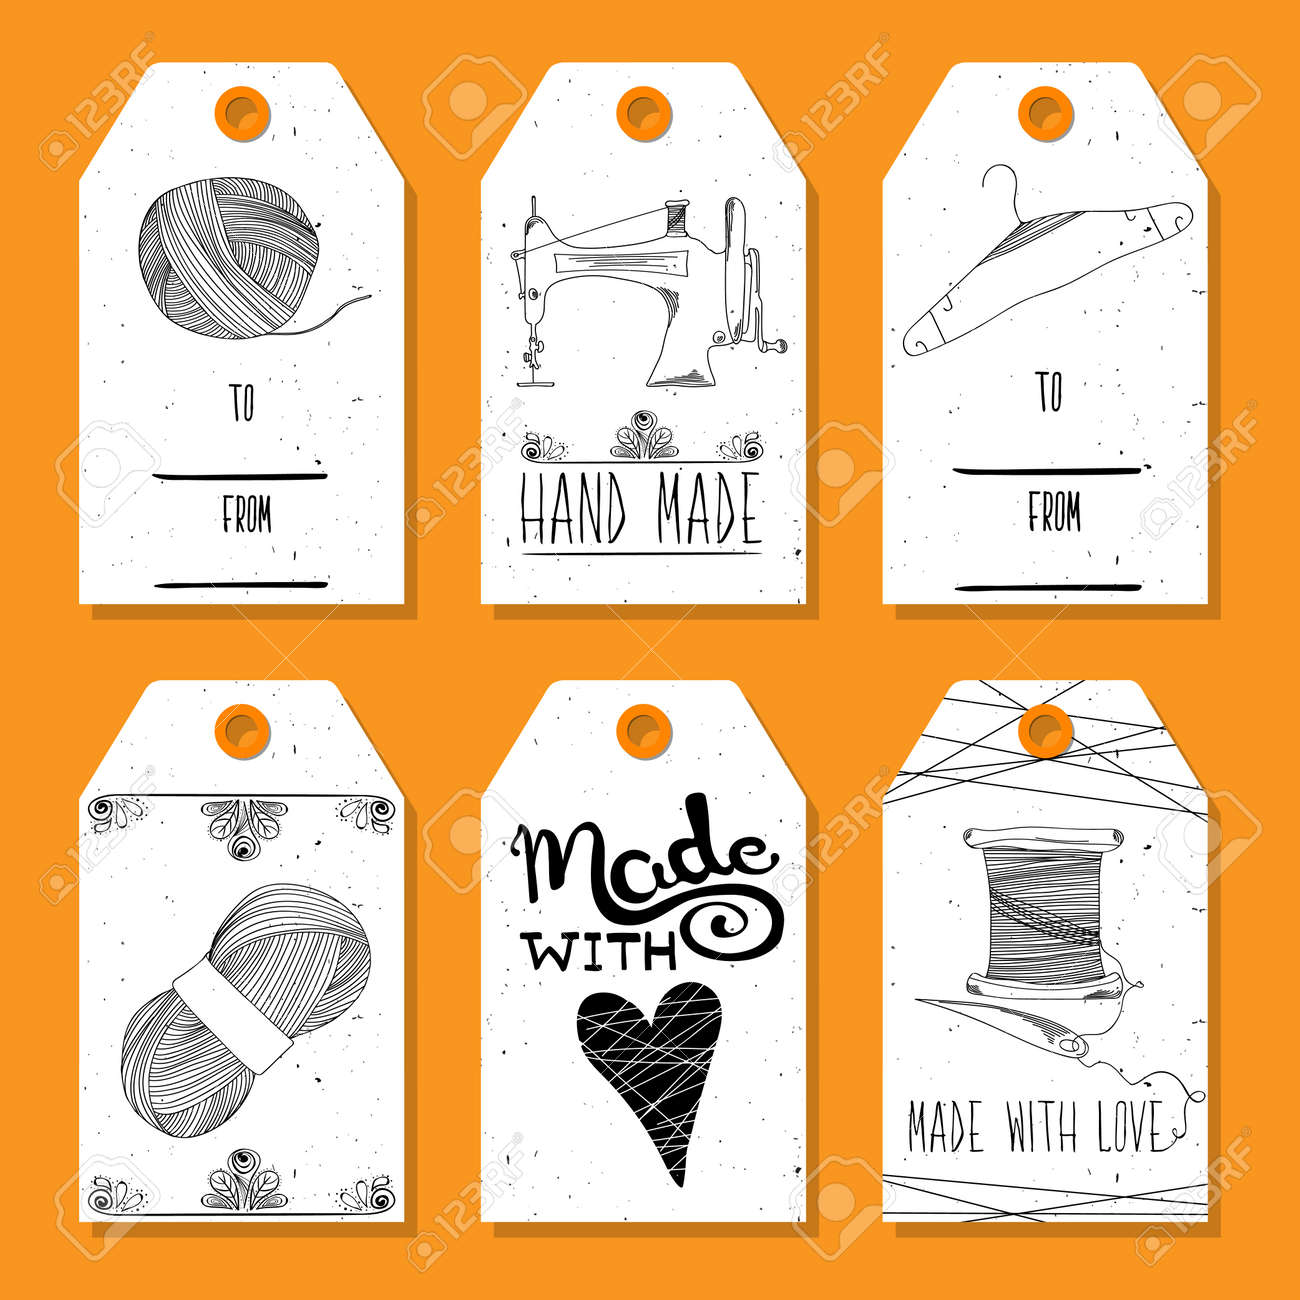 image regarding Printable Textiles named Printable tags within just a retro design Hand-drawn. Sewing techniques, techniques..